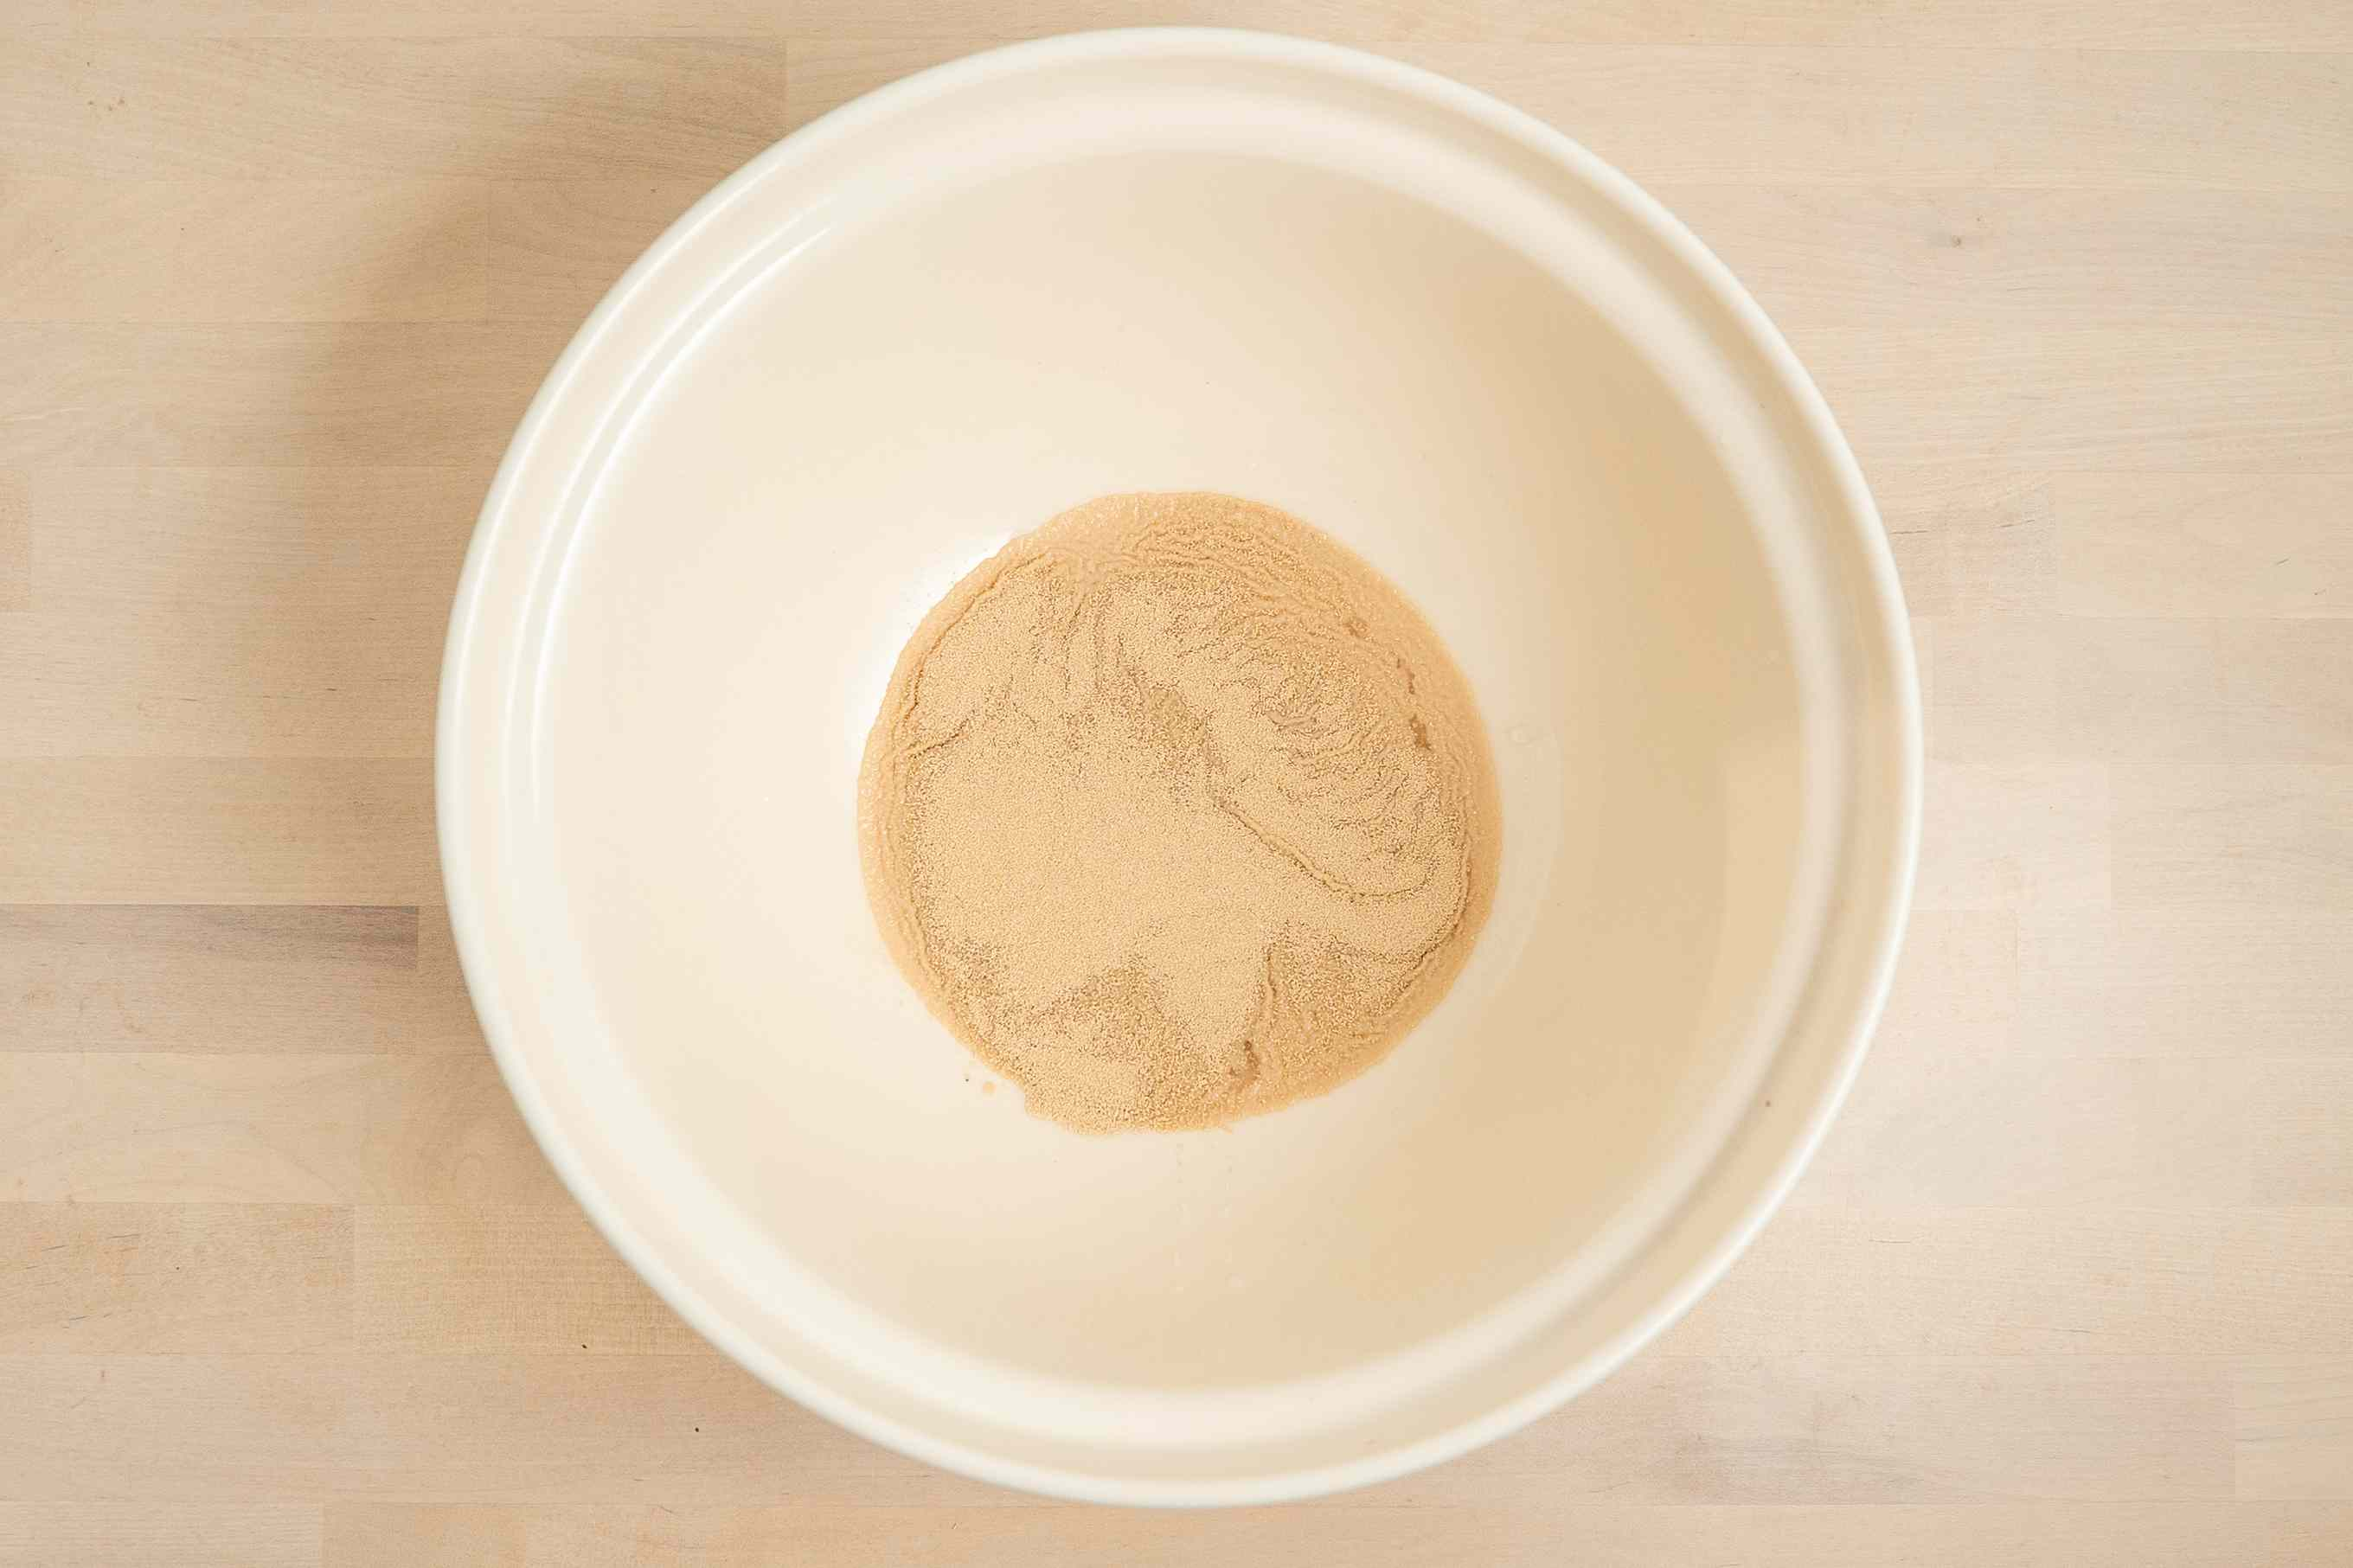 sprinkle yeast over the water in a bowl